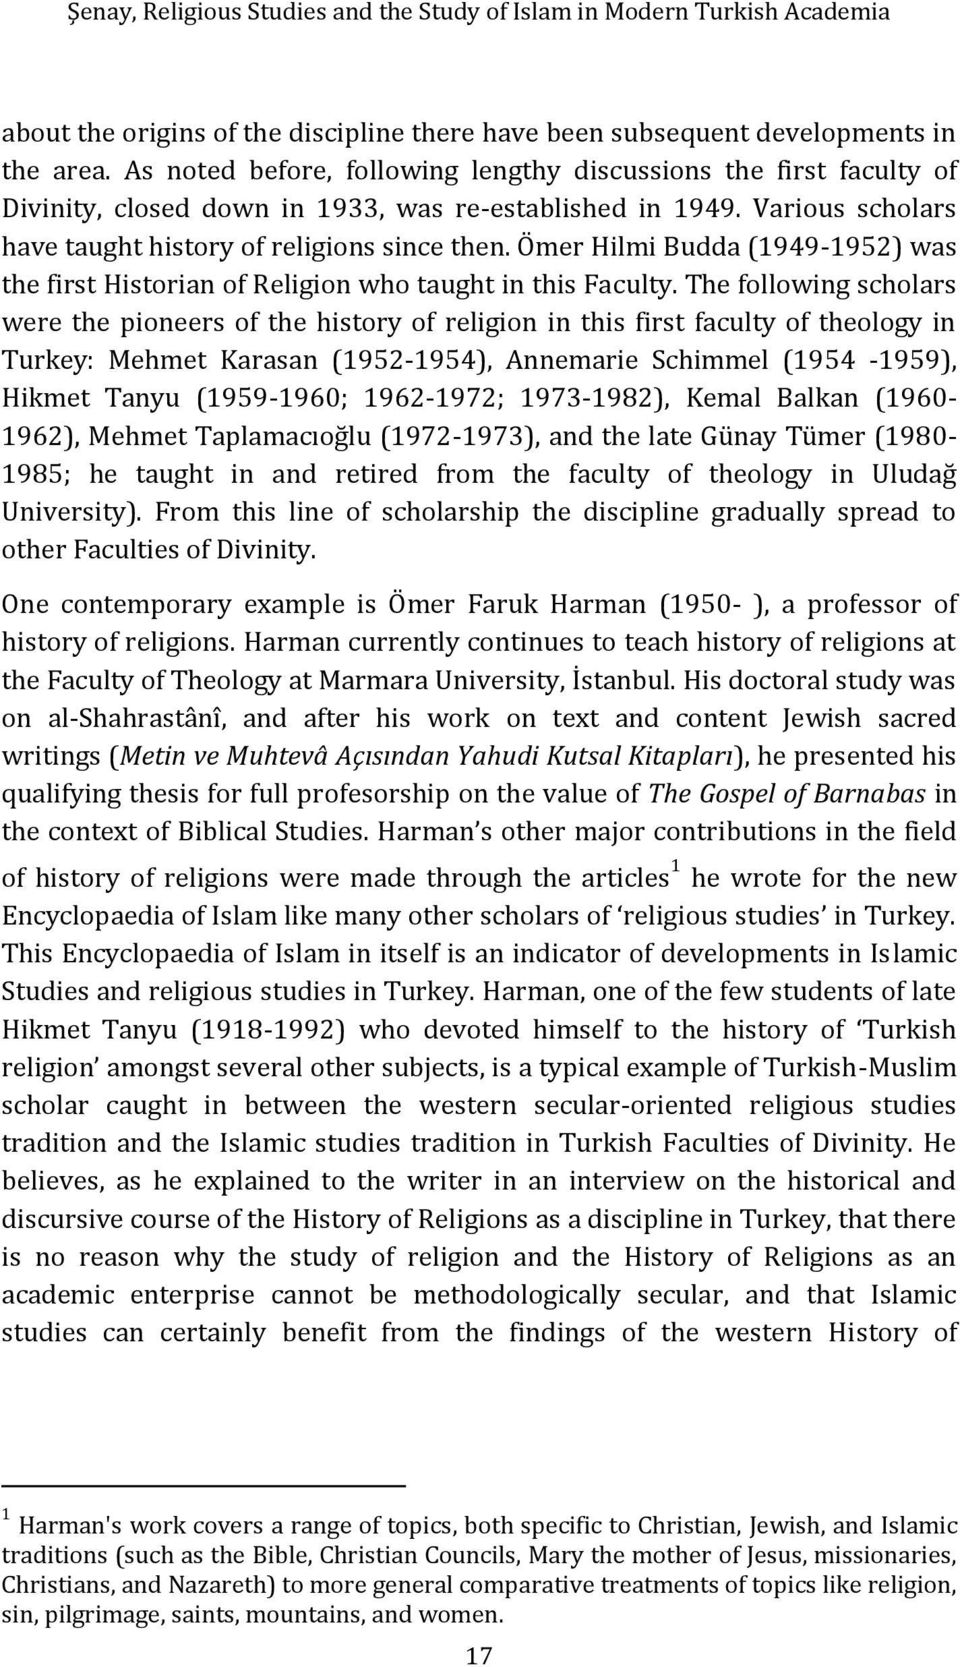 Ömer Hilmi Budda (1949-1952) was the first Historian of Religion who taught in this Faculty.